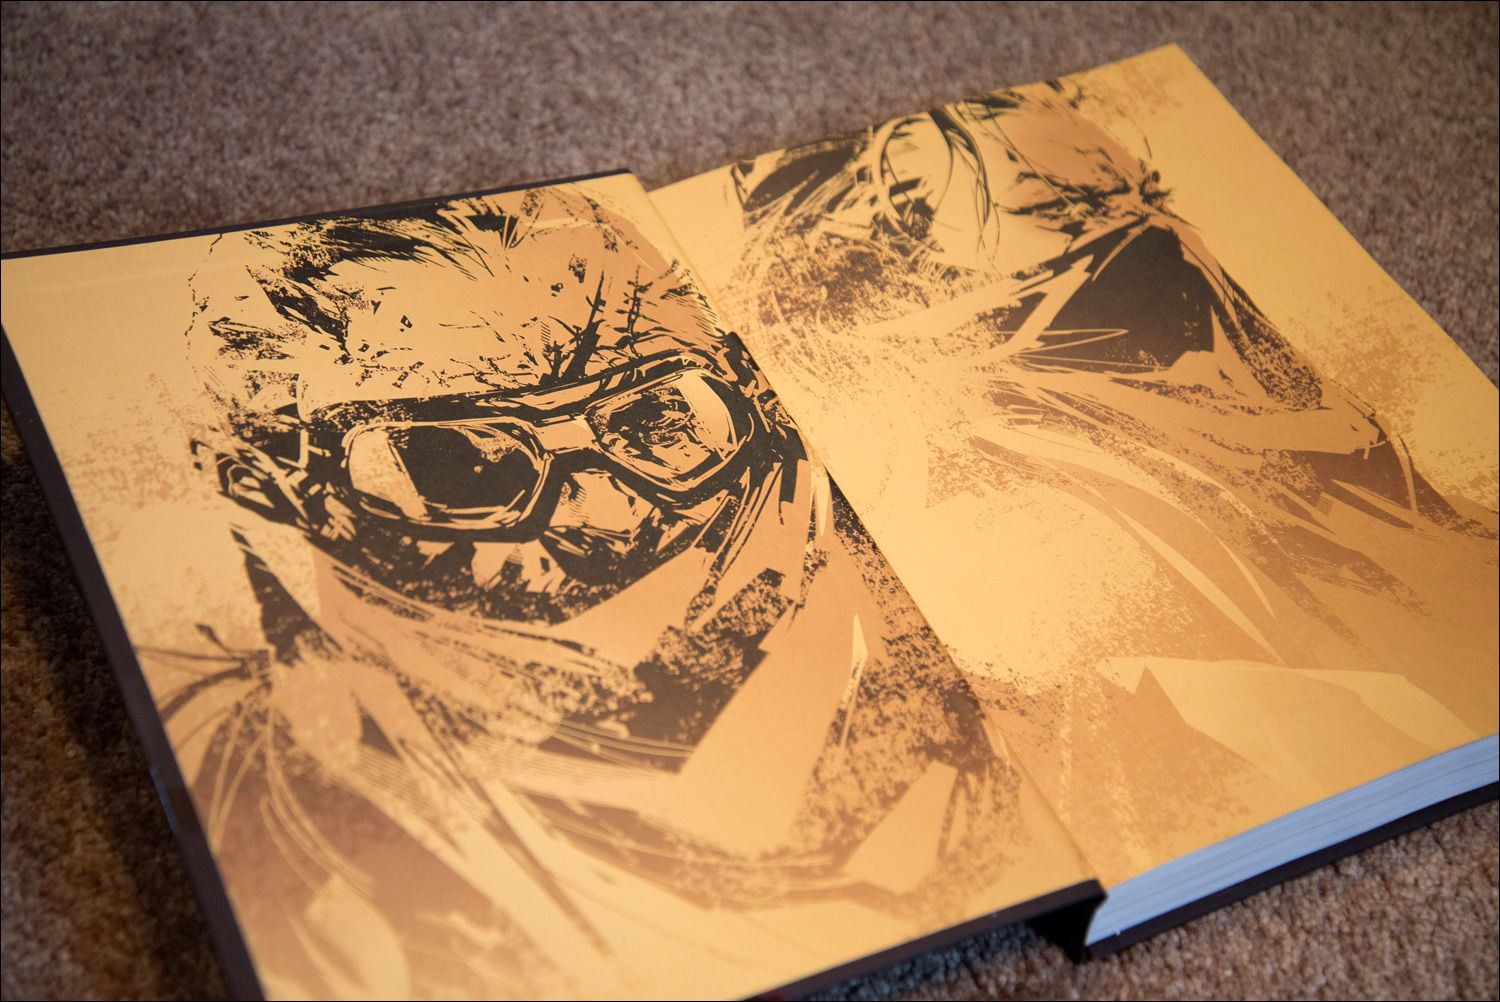 Metal-Gear-Solid-V-The-Phantom-Pain-Collector's-Edition-Guide-Cover-Front-End-Paper